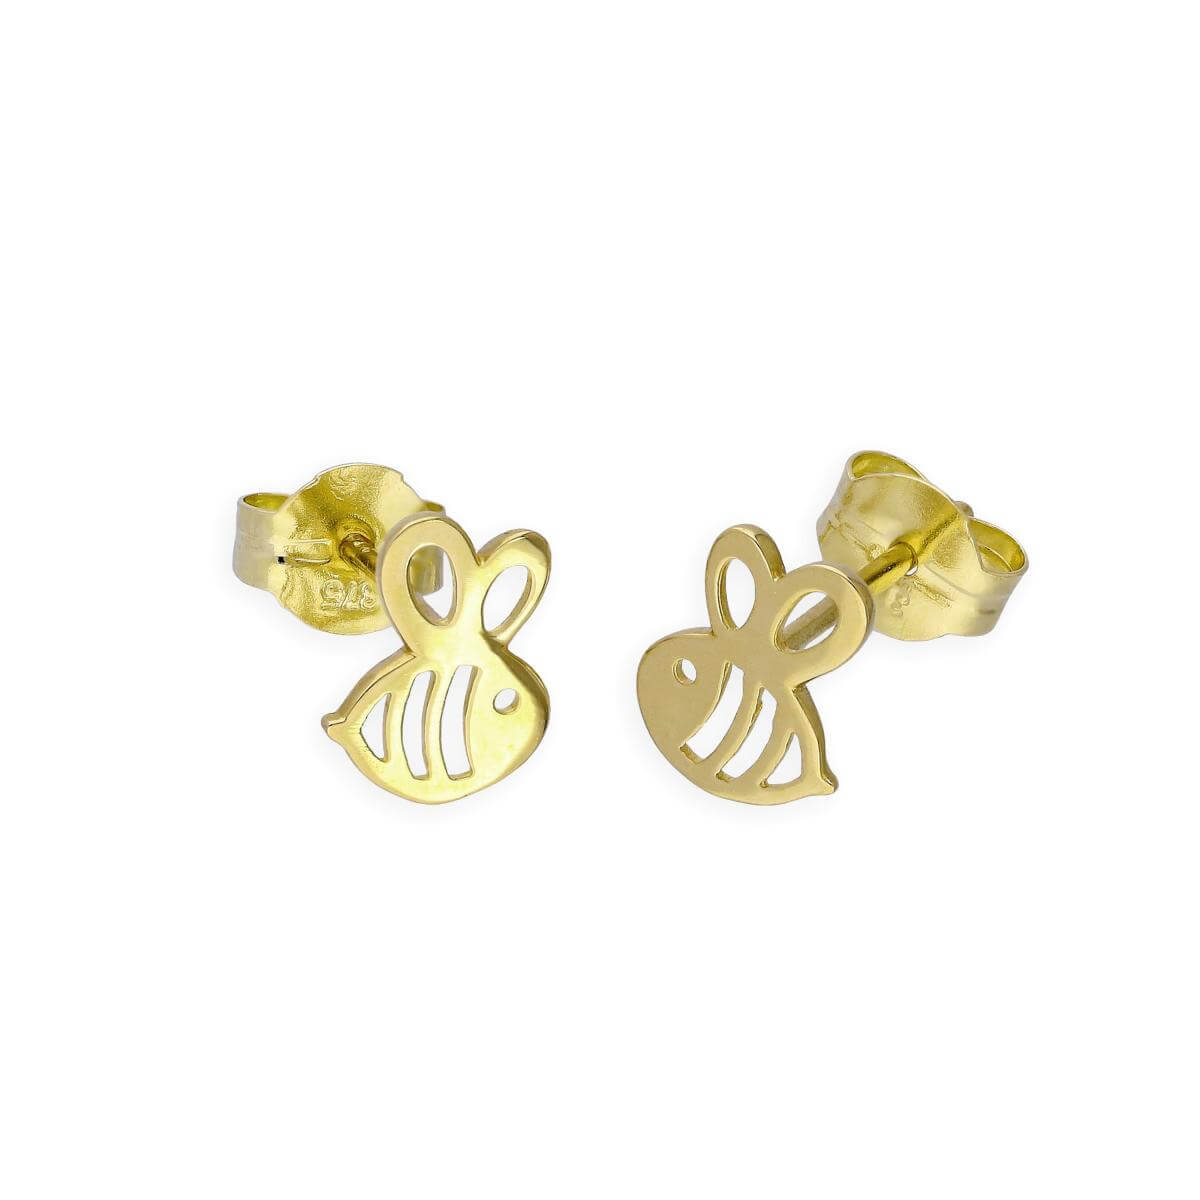 9ct Gold Cute Bumble Bee Stud Earrings